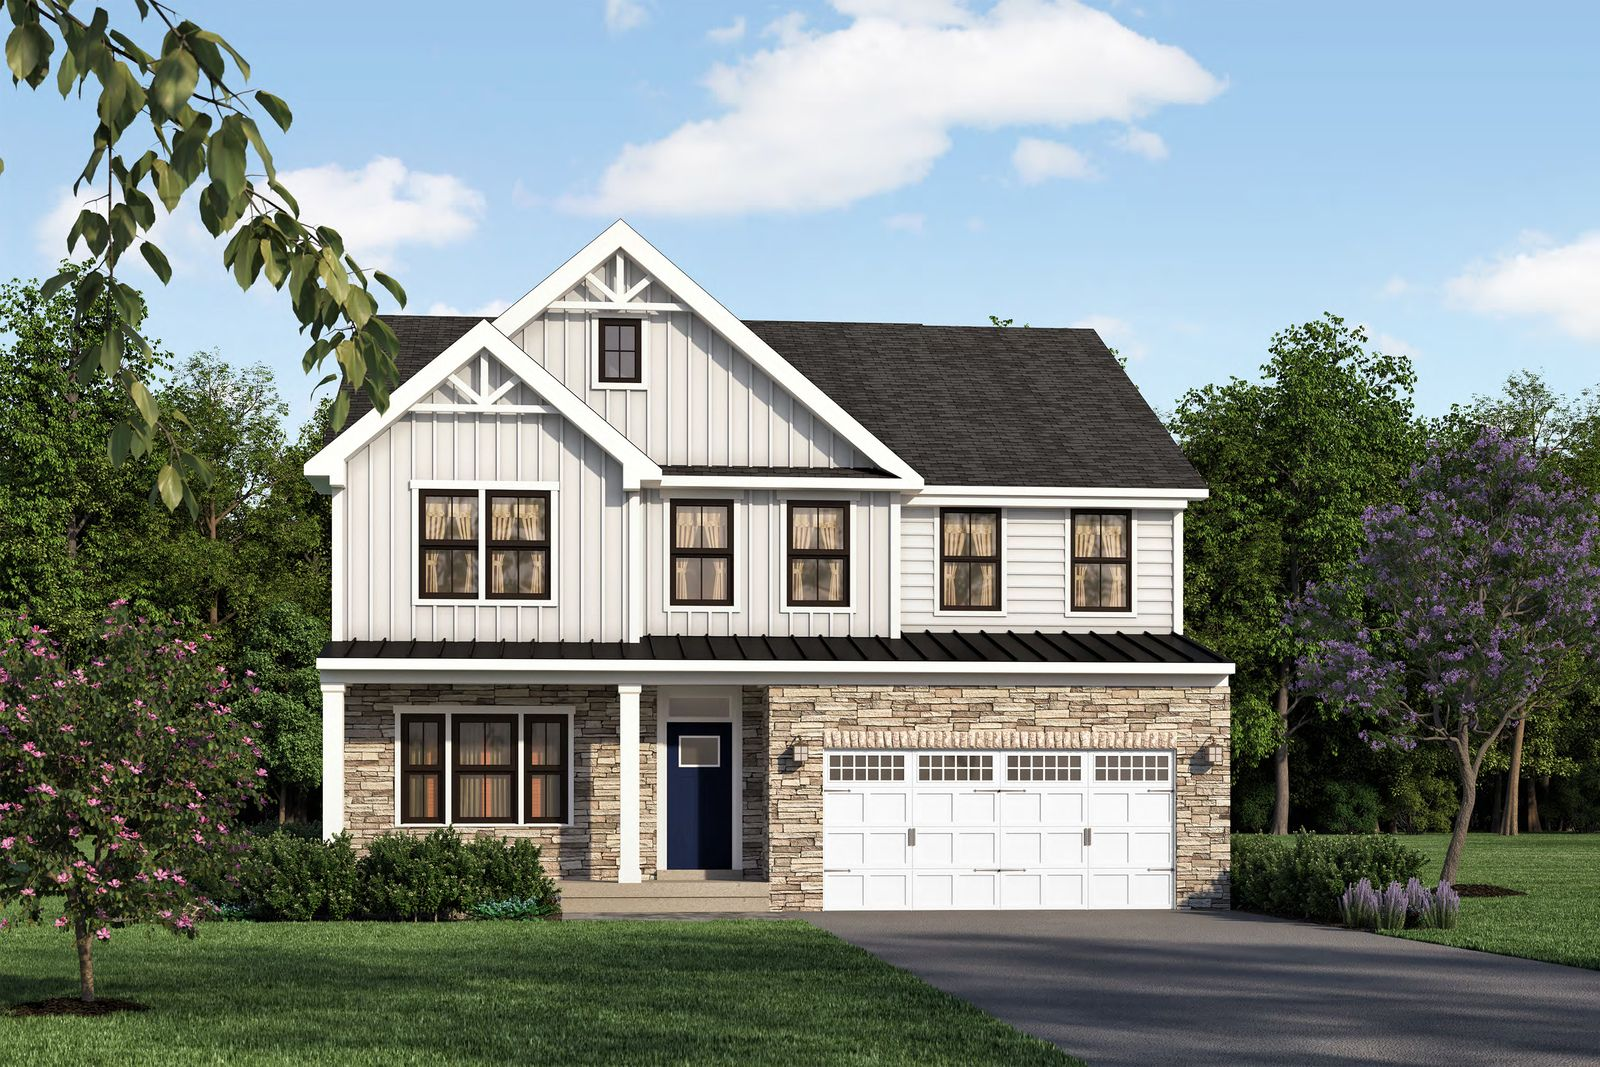 WELCOME TO ASHBOURNE MEADOWS:The only new single homes in a parklike setting with walking trails, at former Ashbourne Country Club, minutes to Philadelphia.Click here to join the VIP list for exclusive pricing and updates!